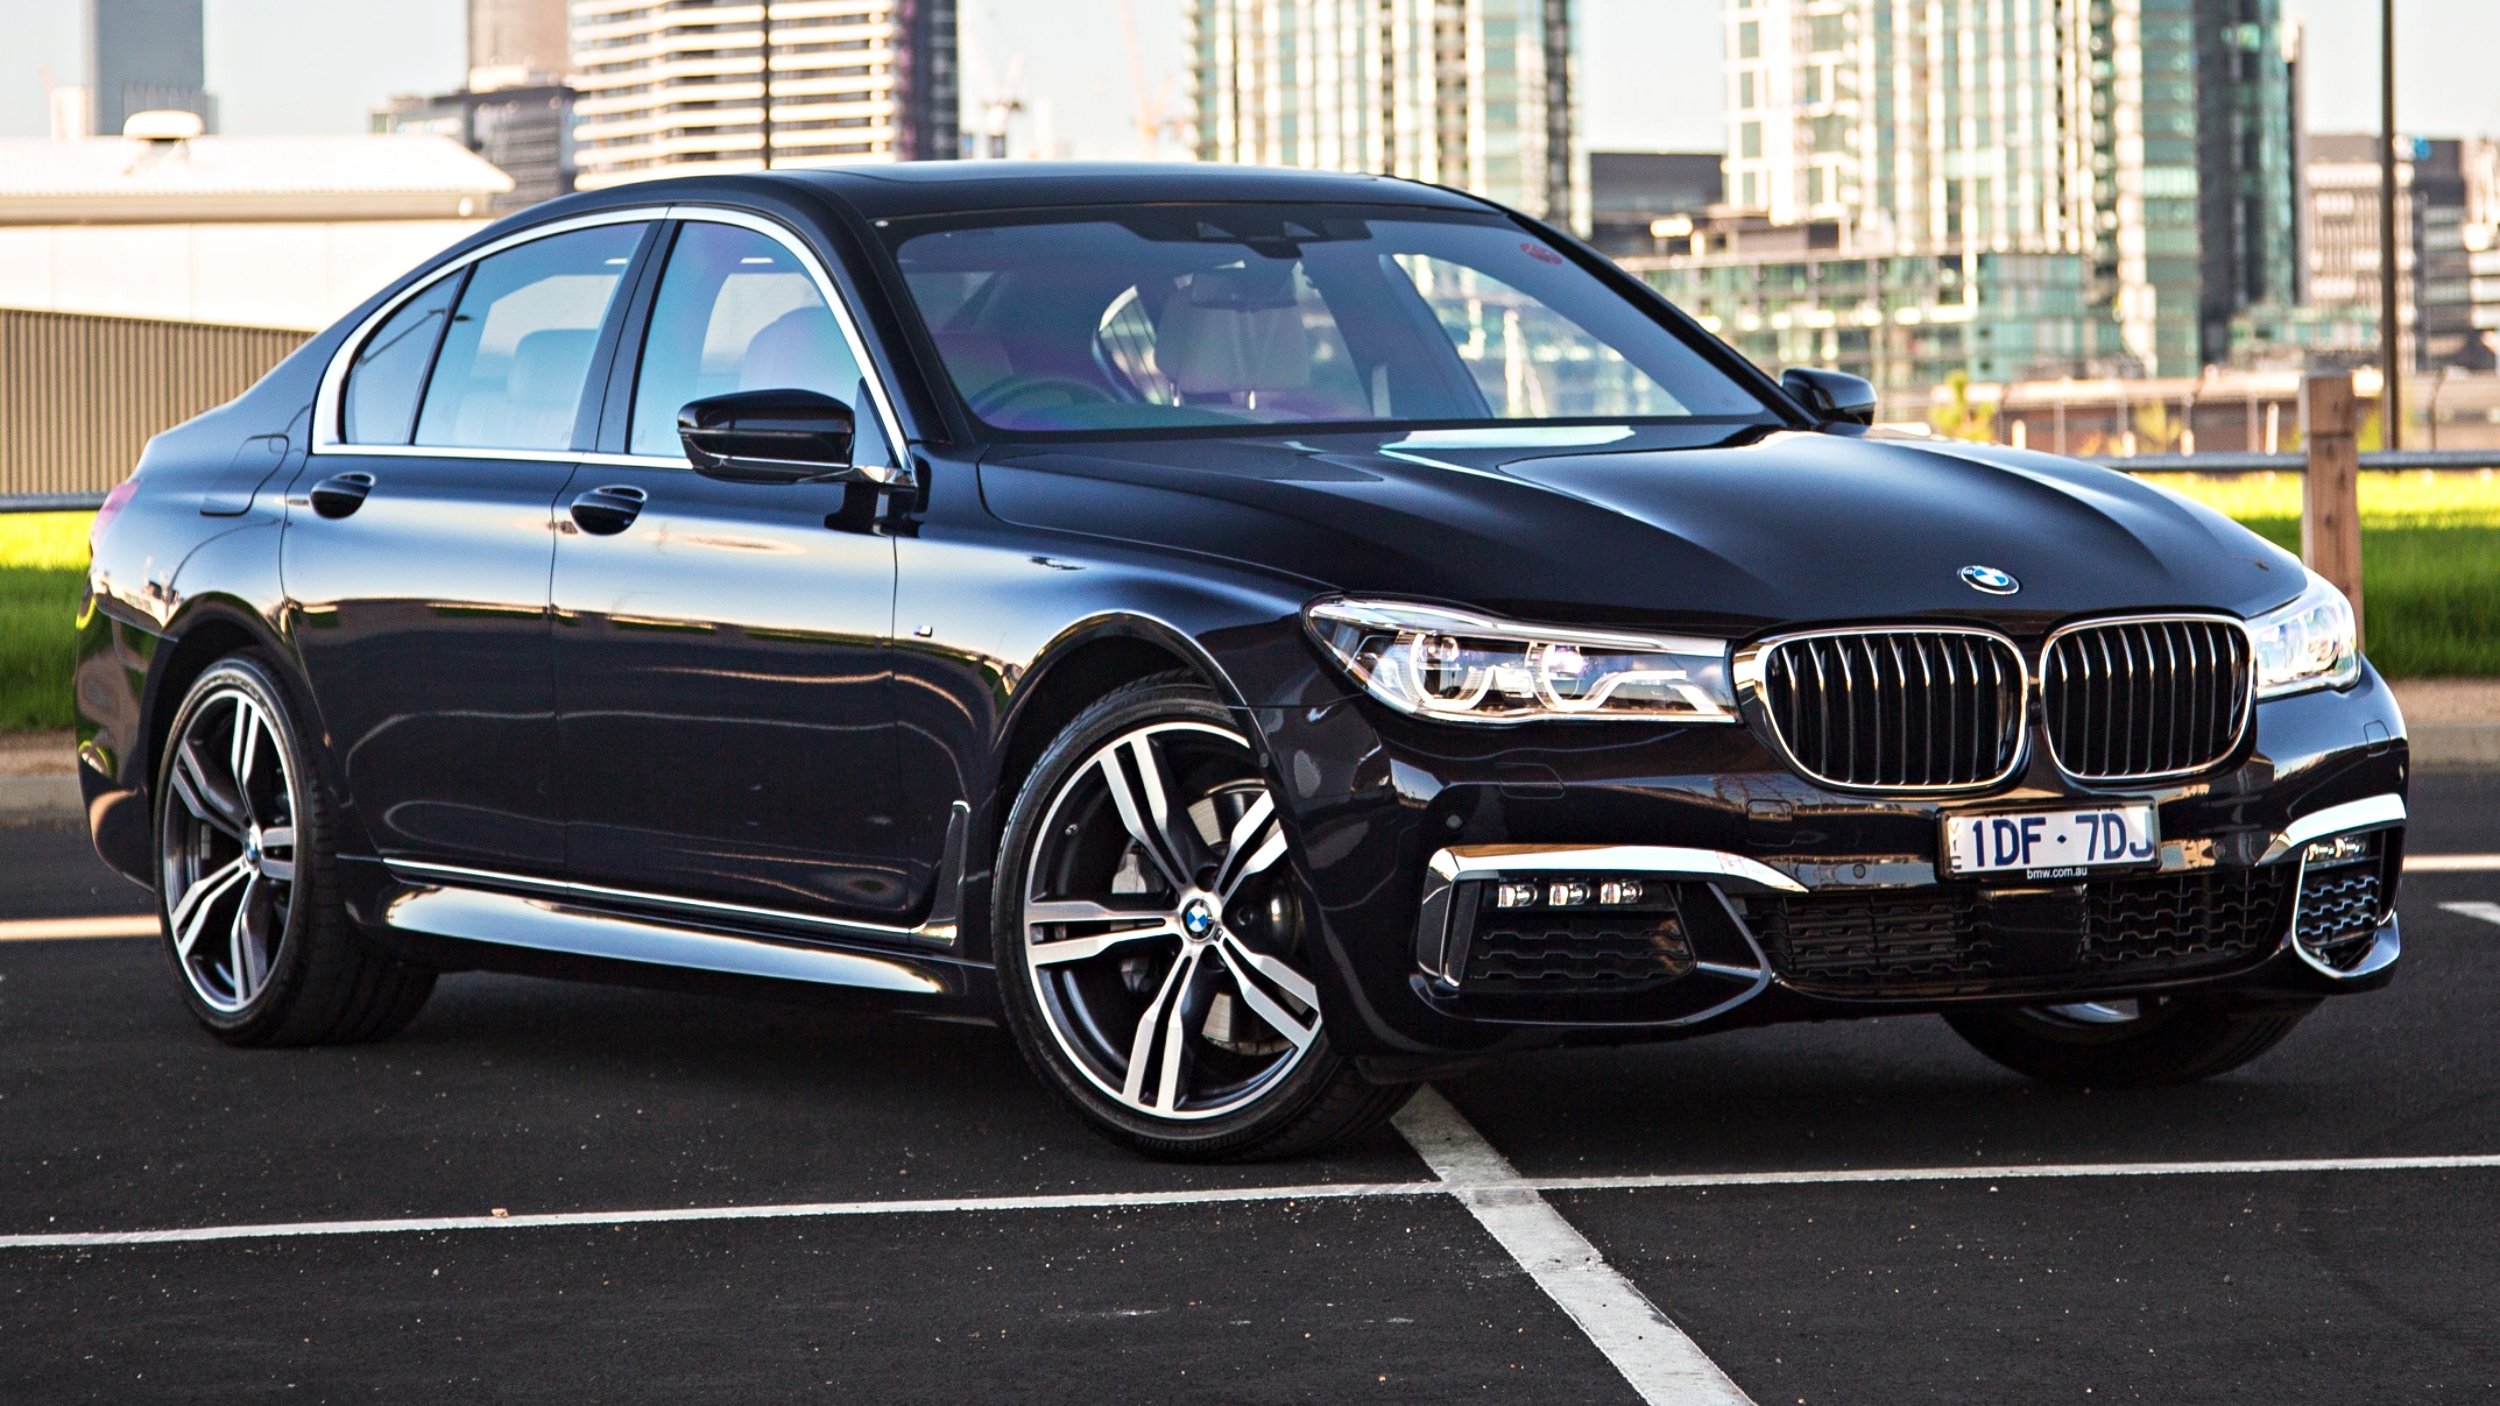 News 2019 Bmw 7 Series To Gain A Little From X7 8 Series